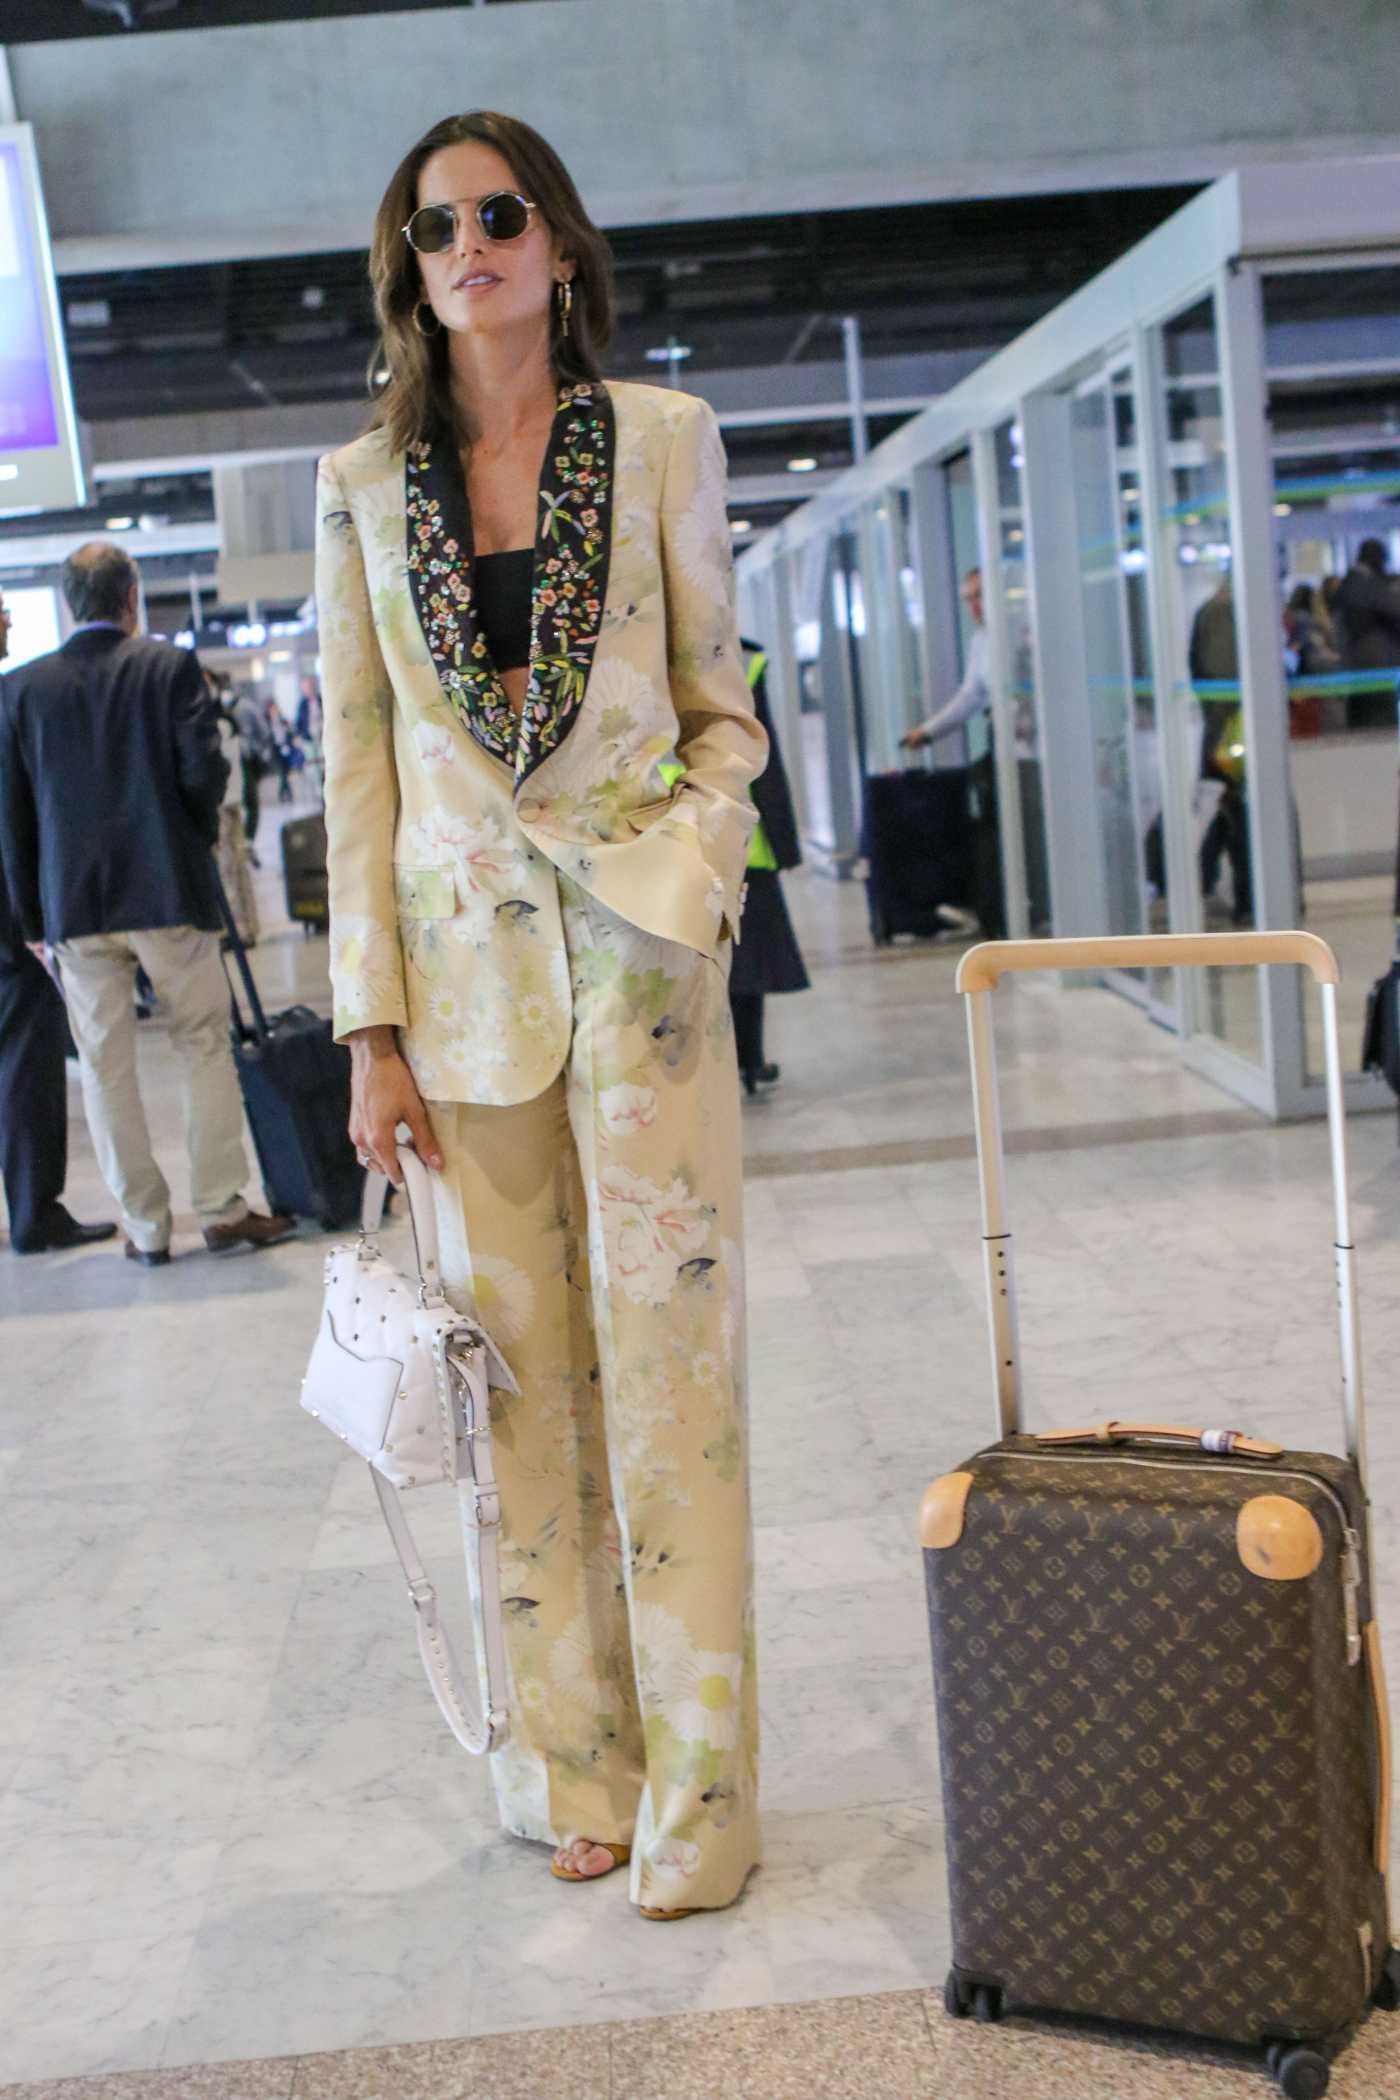 Izabel Goulart in a Beige Floral Suit Arrives at Nice Airport Ahead of the 72nd Annual Cannes Film Festival 05/13/2019